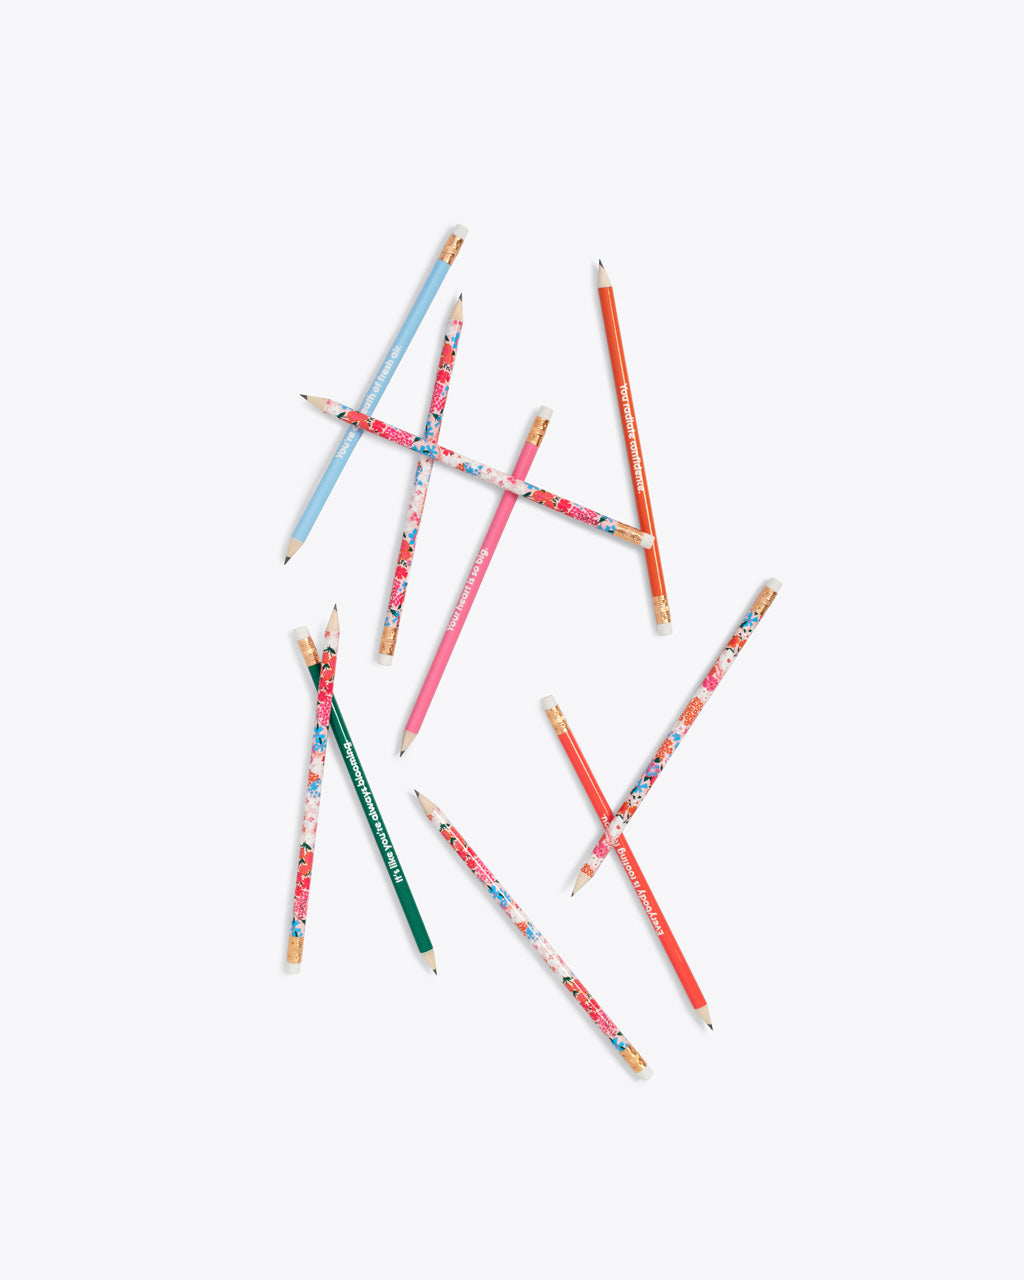 set of 10 pencils scattered